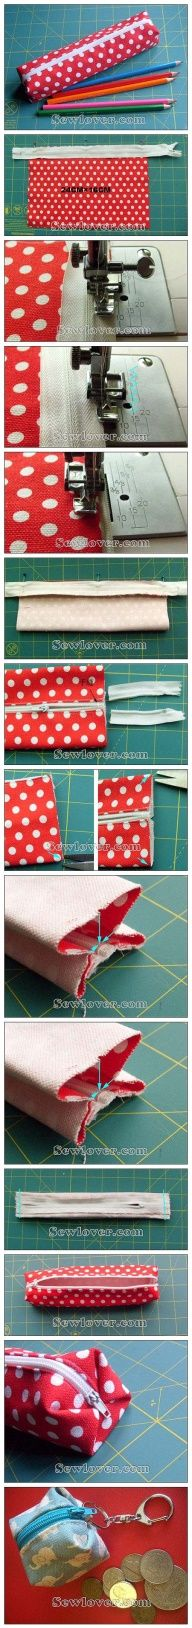 Tutorial for boxy pouch